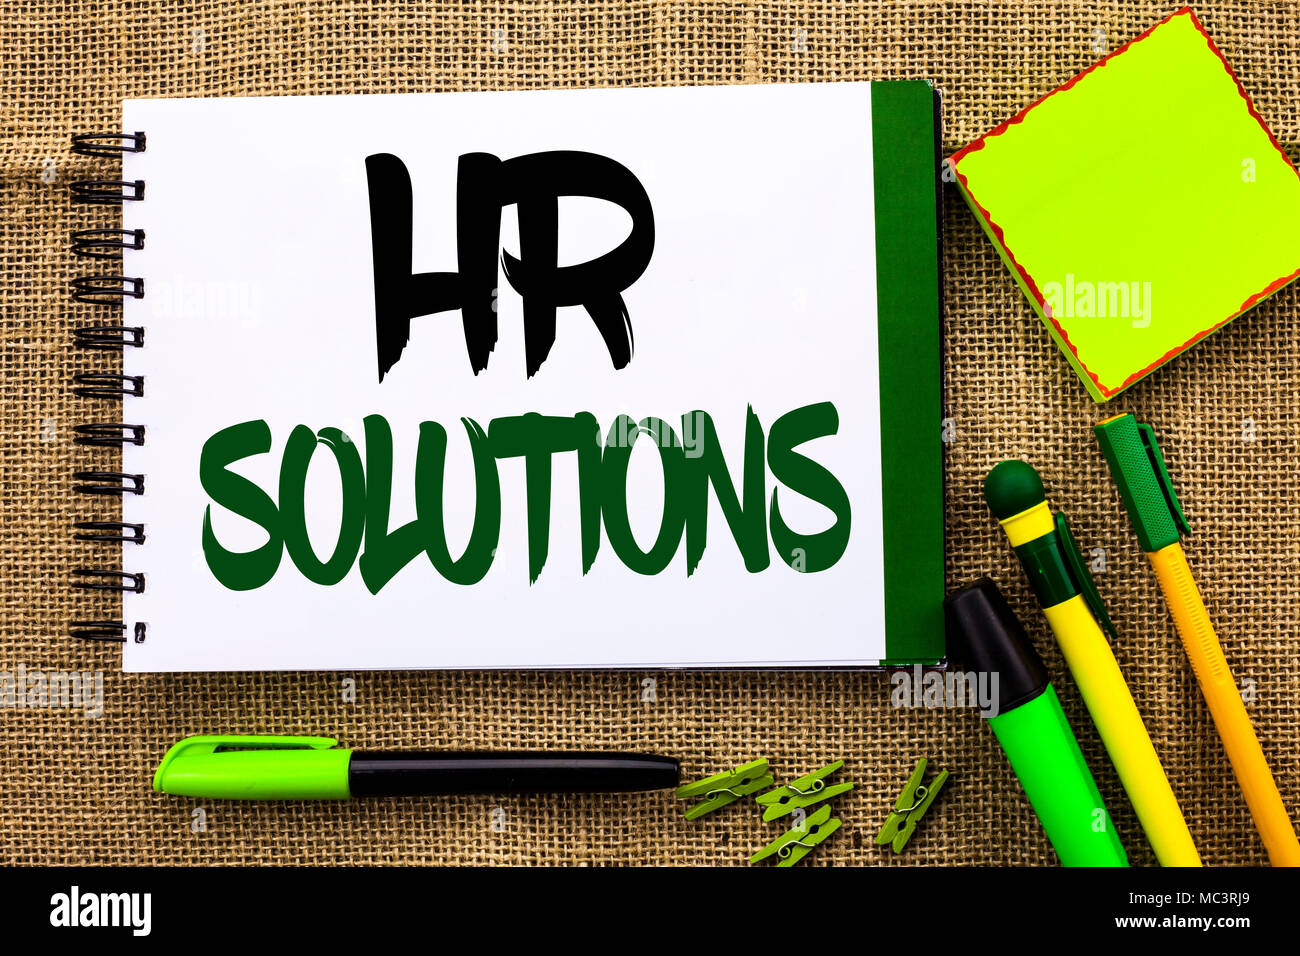 Text sign showing Hr Solutions. Conceptual photo Recruitment Solution Consulting Management Solving Onboarding written Notebooke Book the jute backgro - Stock Image